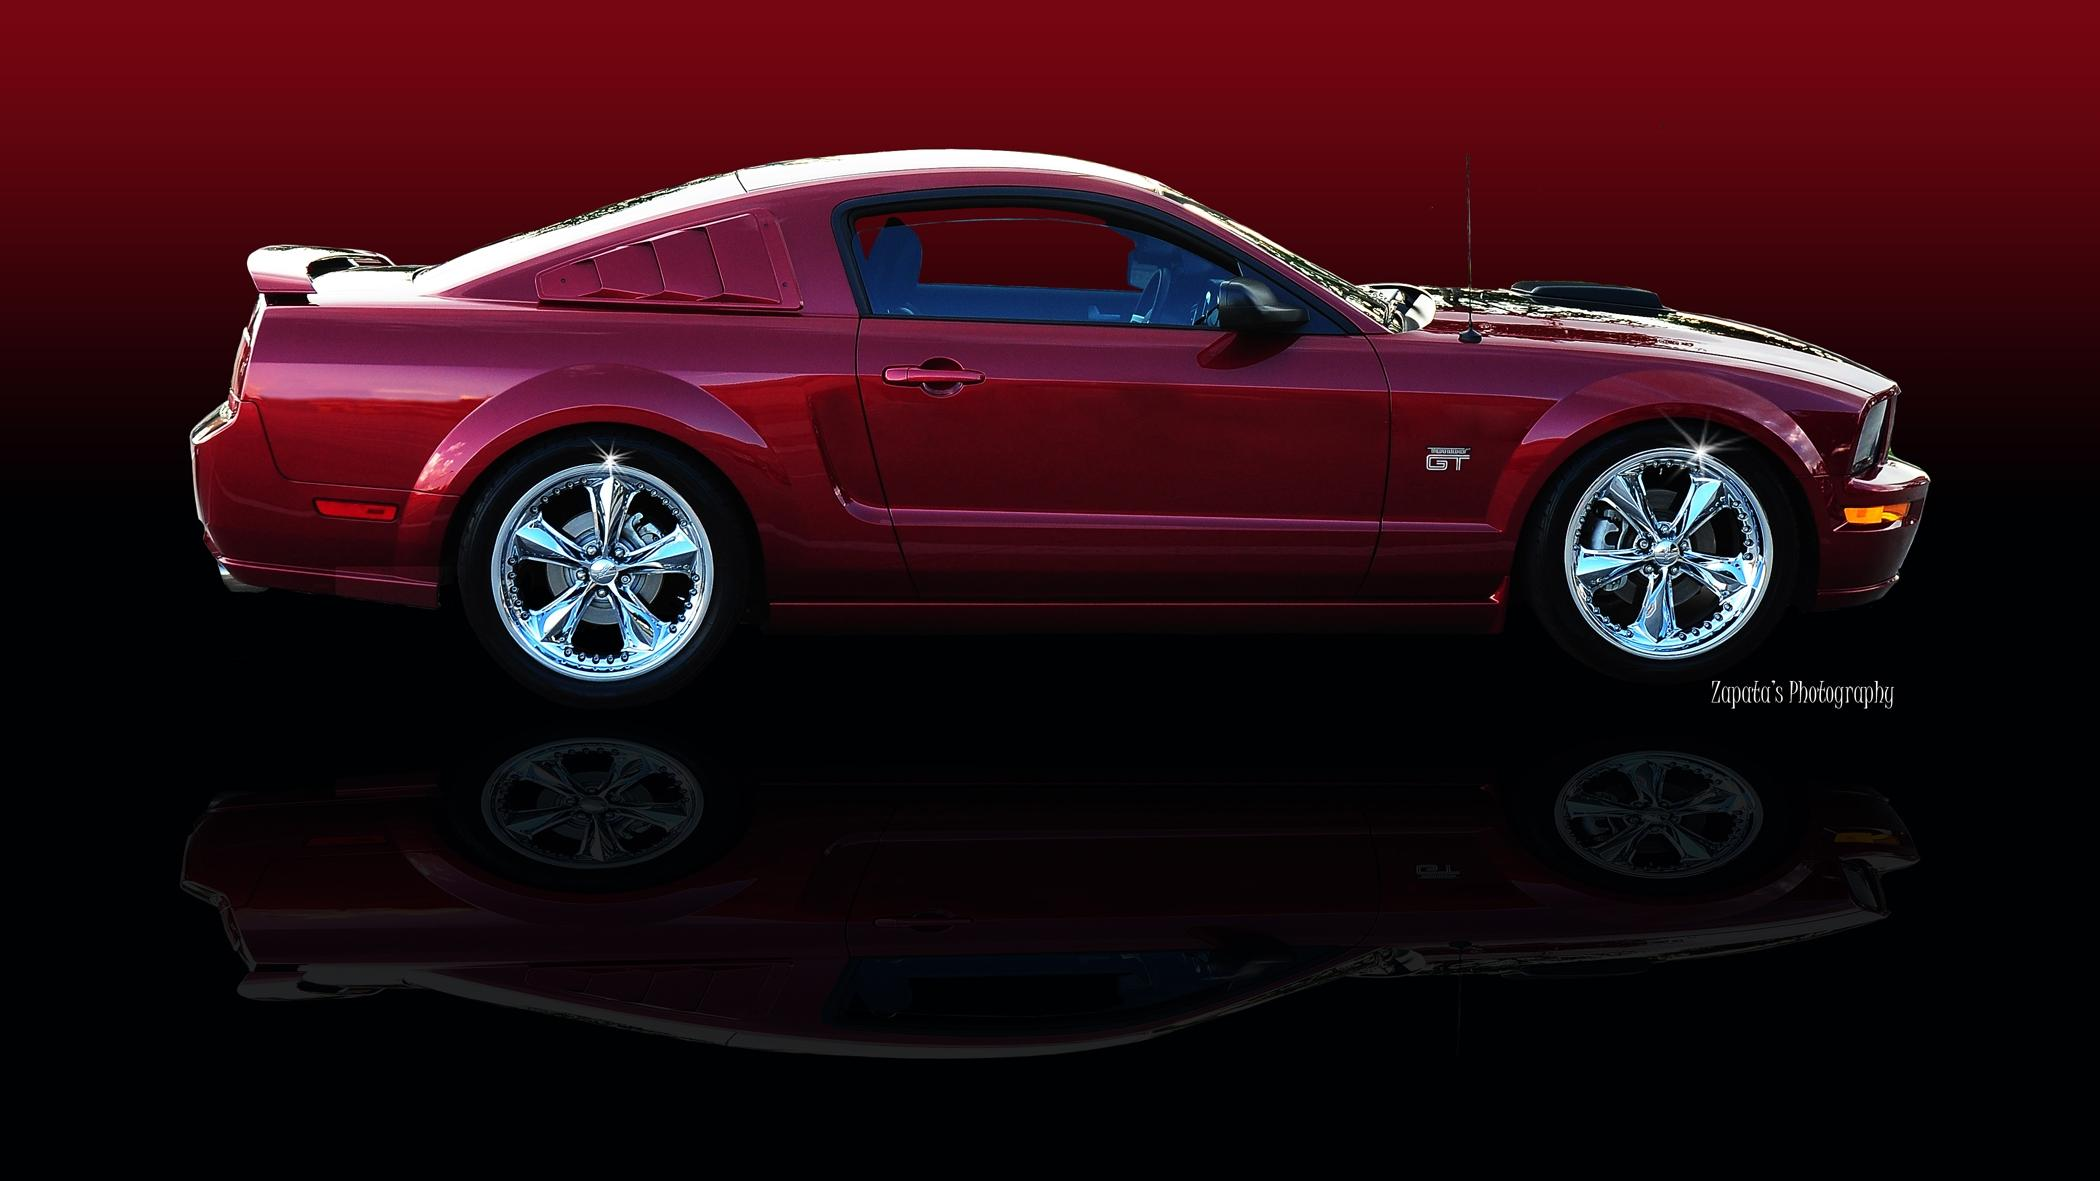 Ford Mustang GT Wallpapers HD Download 2100x1181